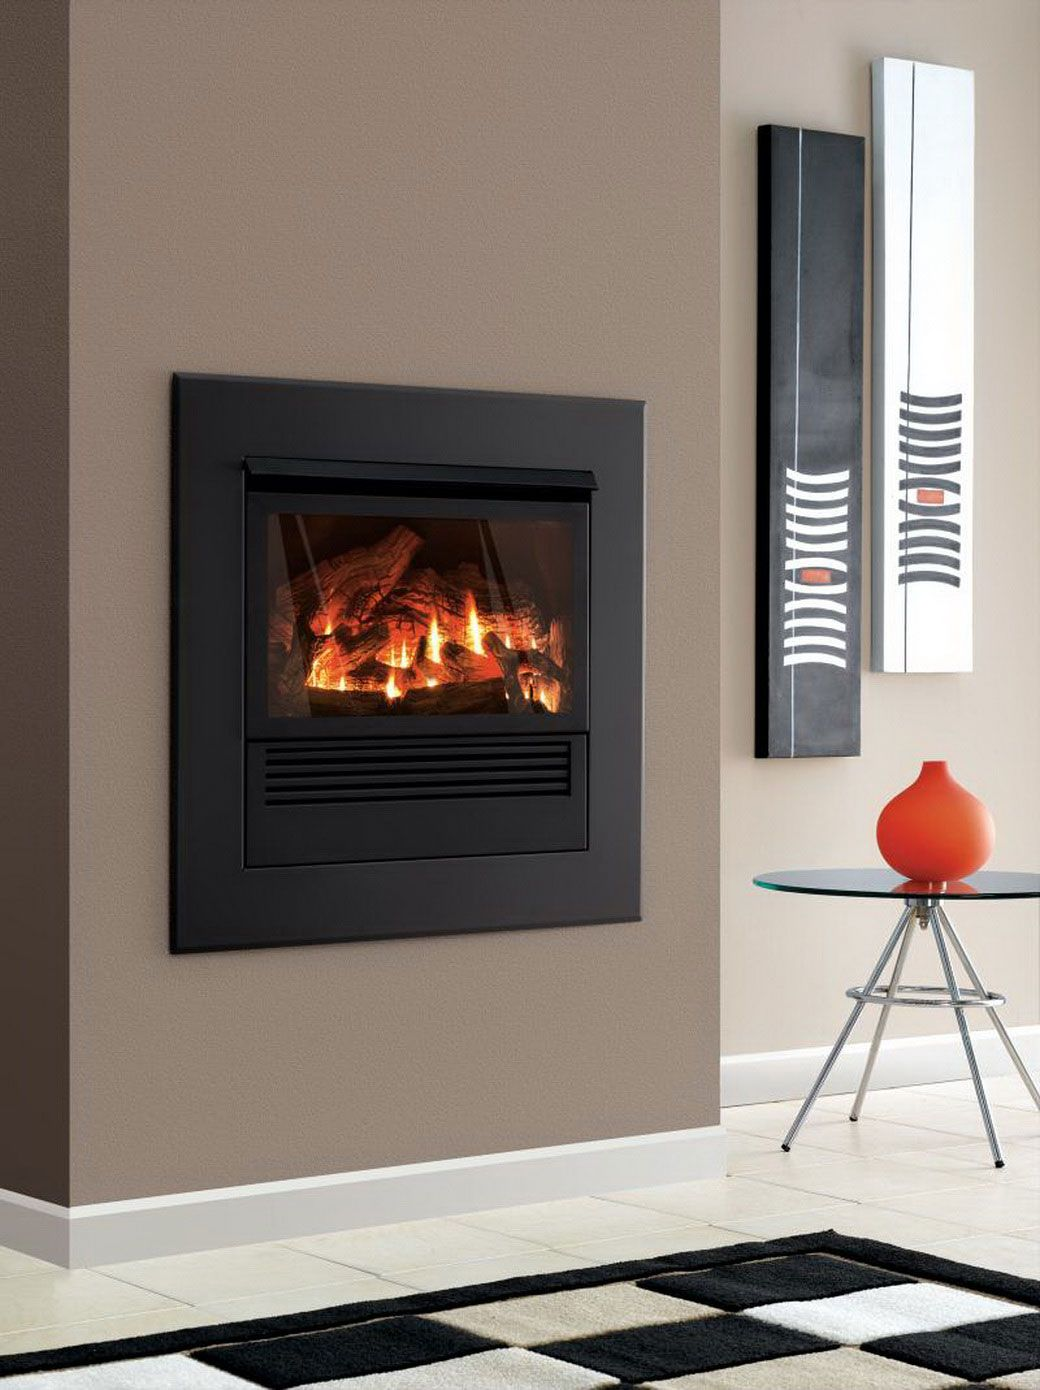 Simple Electric Fireplace Inserts Idea | For the Home ...